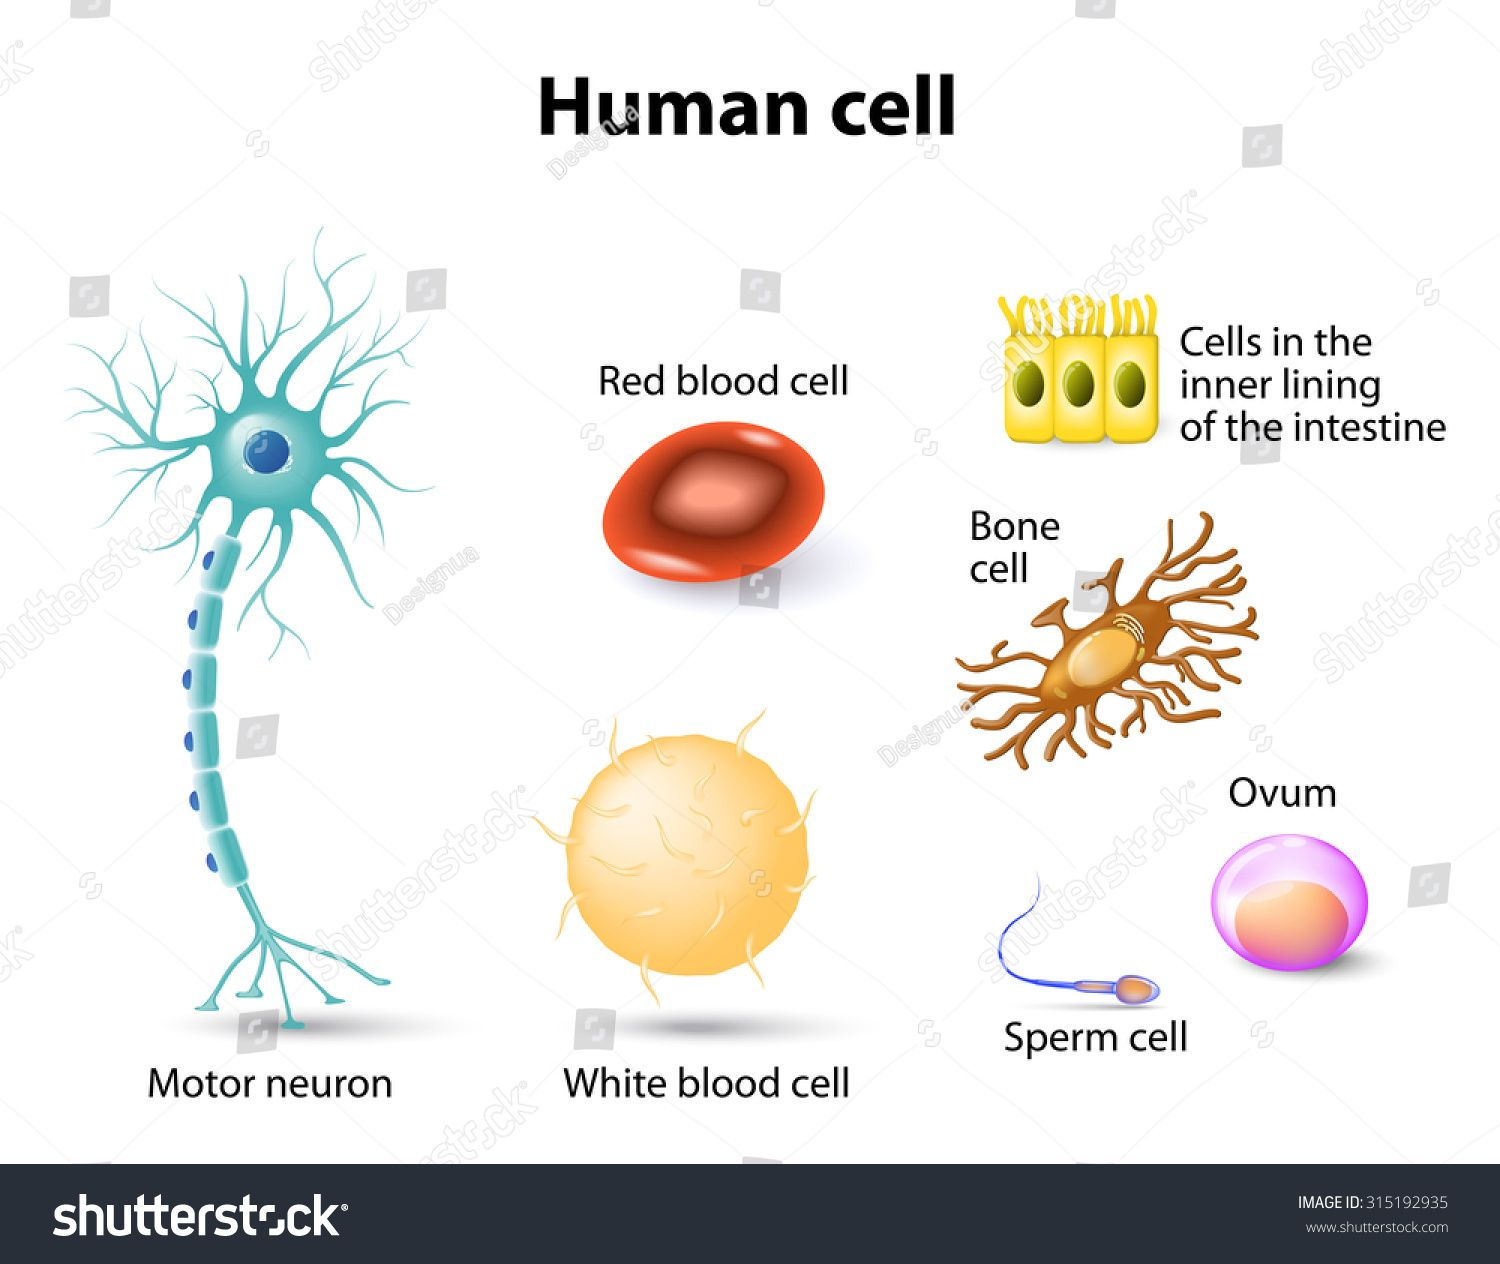 medium resolution of human cell motor neuron red blood cell and white blood cell bone cell sperm cell and ovum